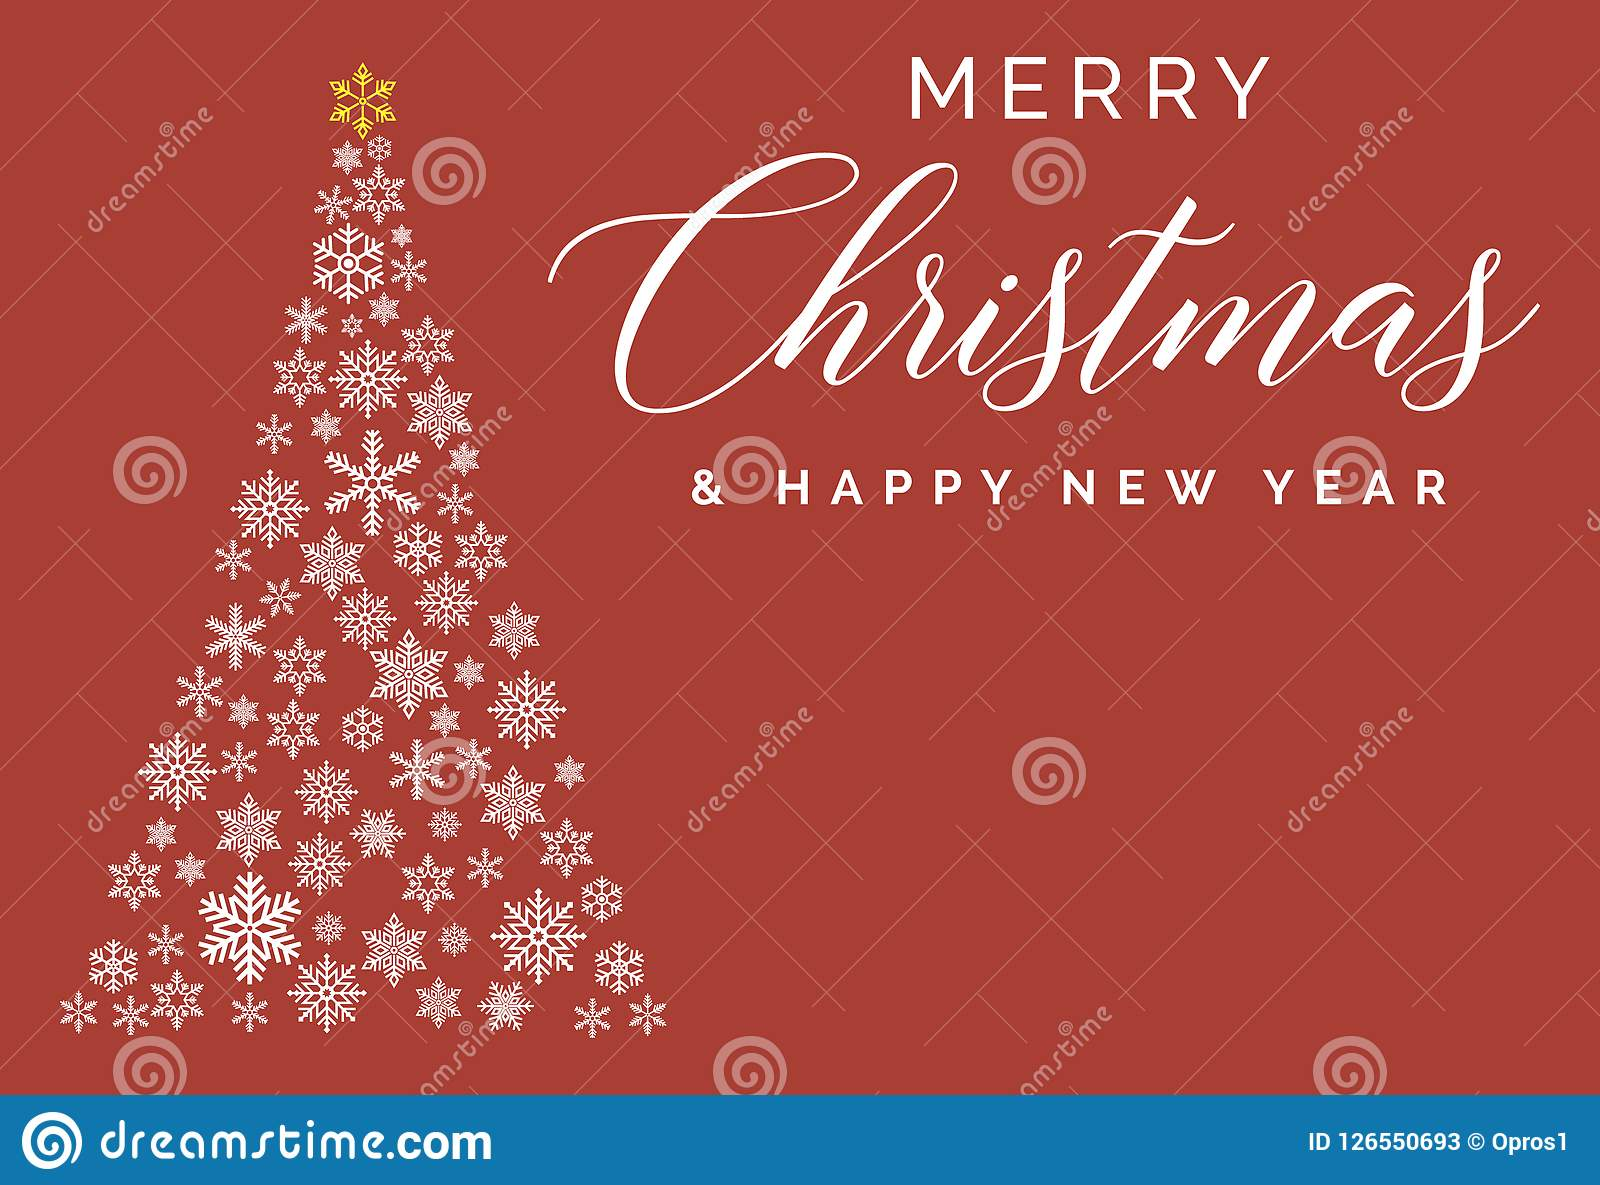 merry christmas and happy new year lettering template greeting card or invitation winter holidays